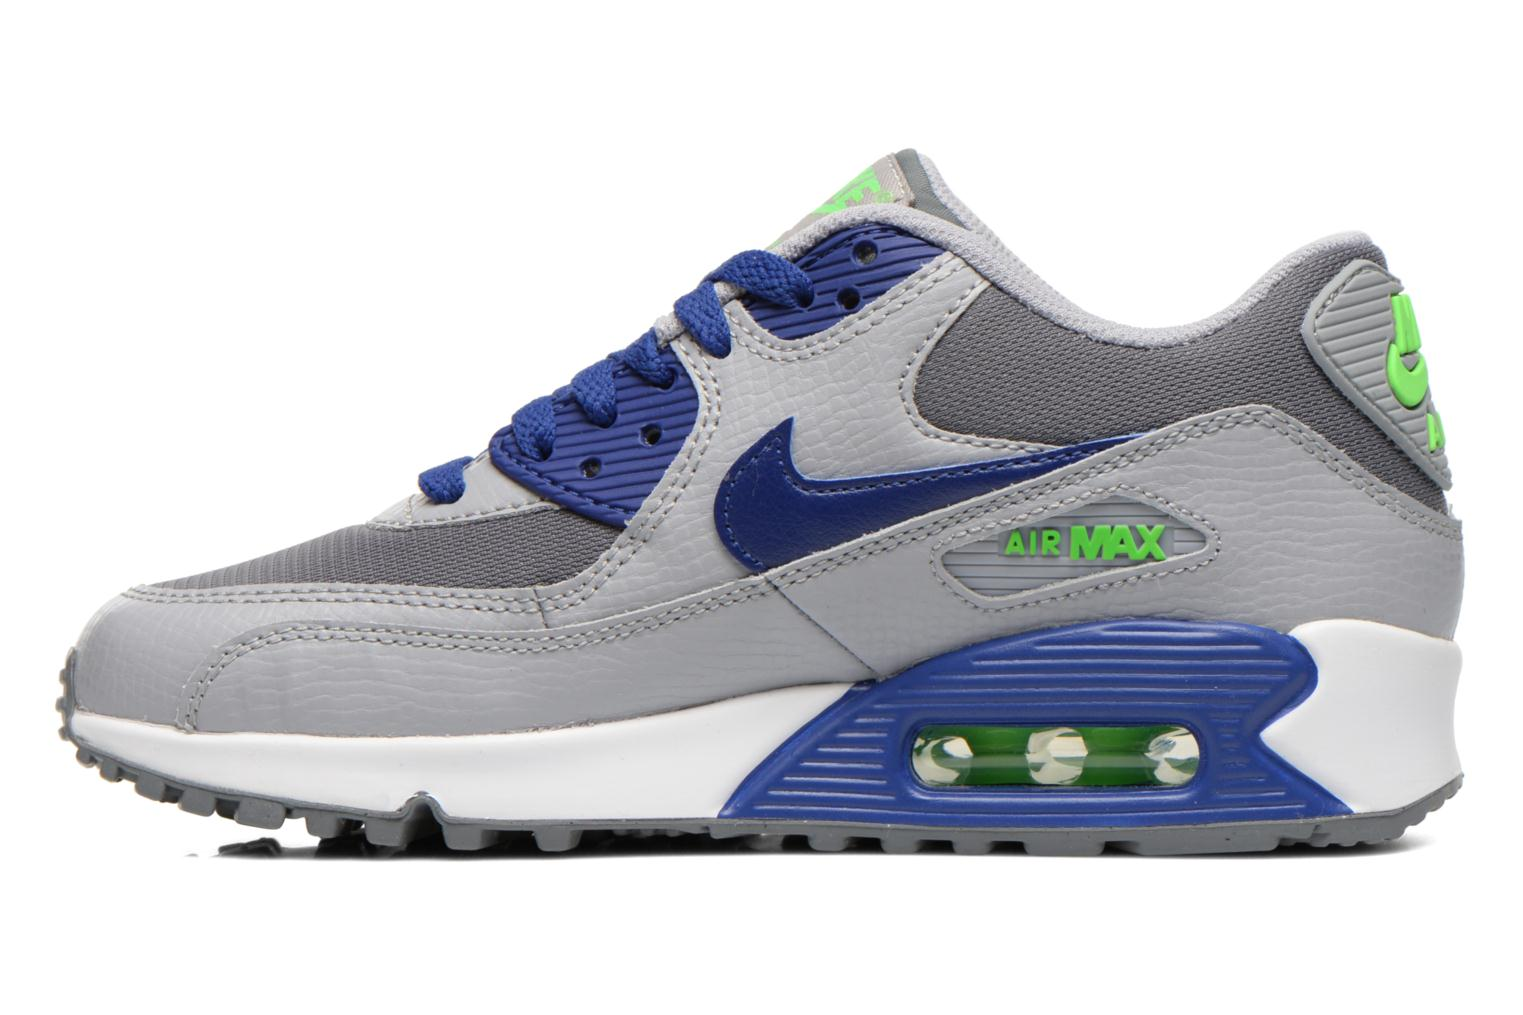 Wolf Grey/Binary Blue-Comet Blue-White Nike NIKE AIR MAX 90 MESH (GS) (Bleu)